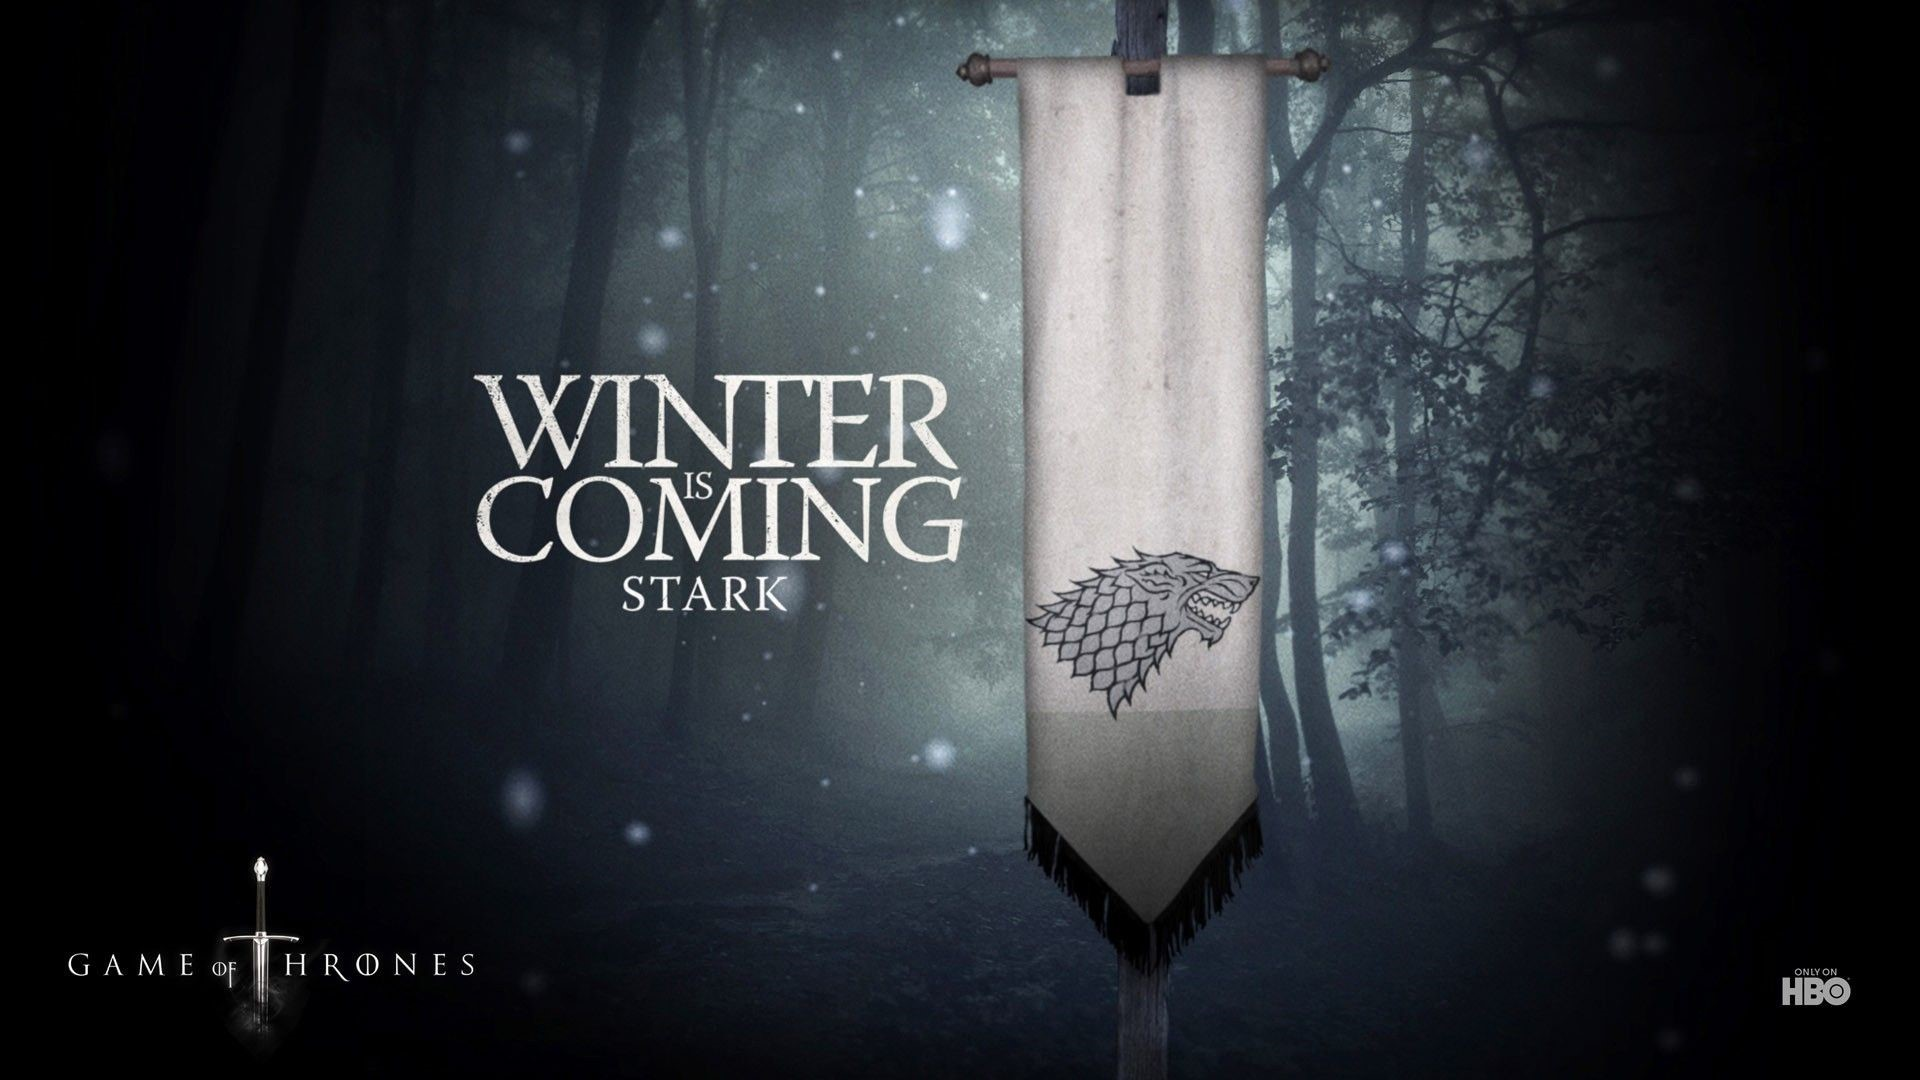 Game of Thrones Desktop images